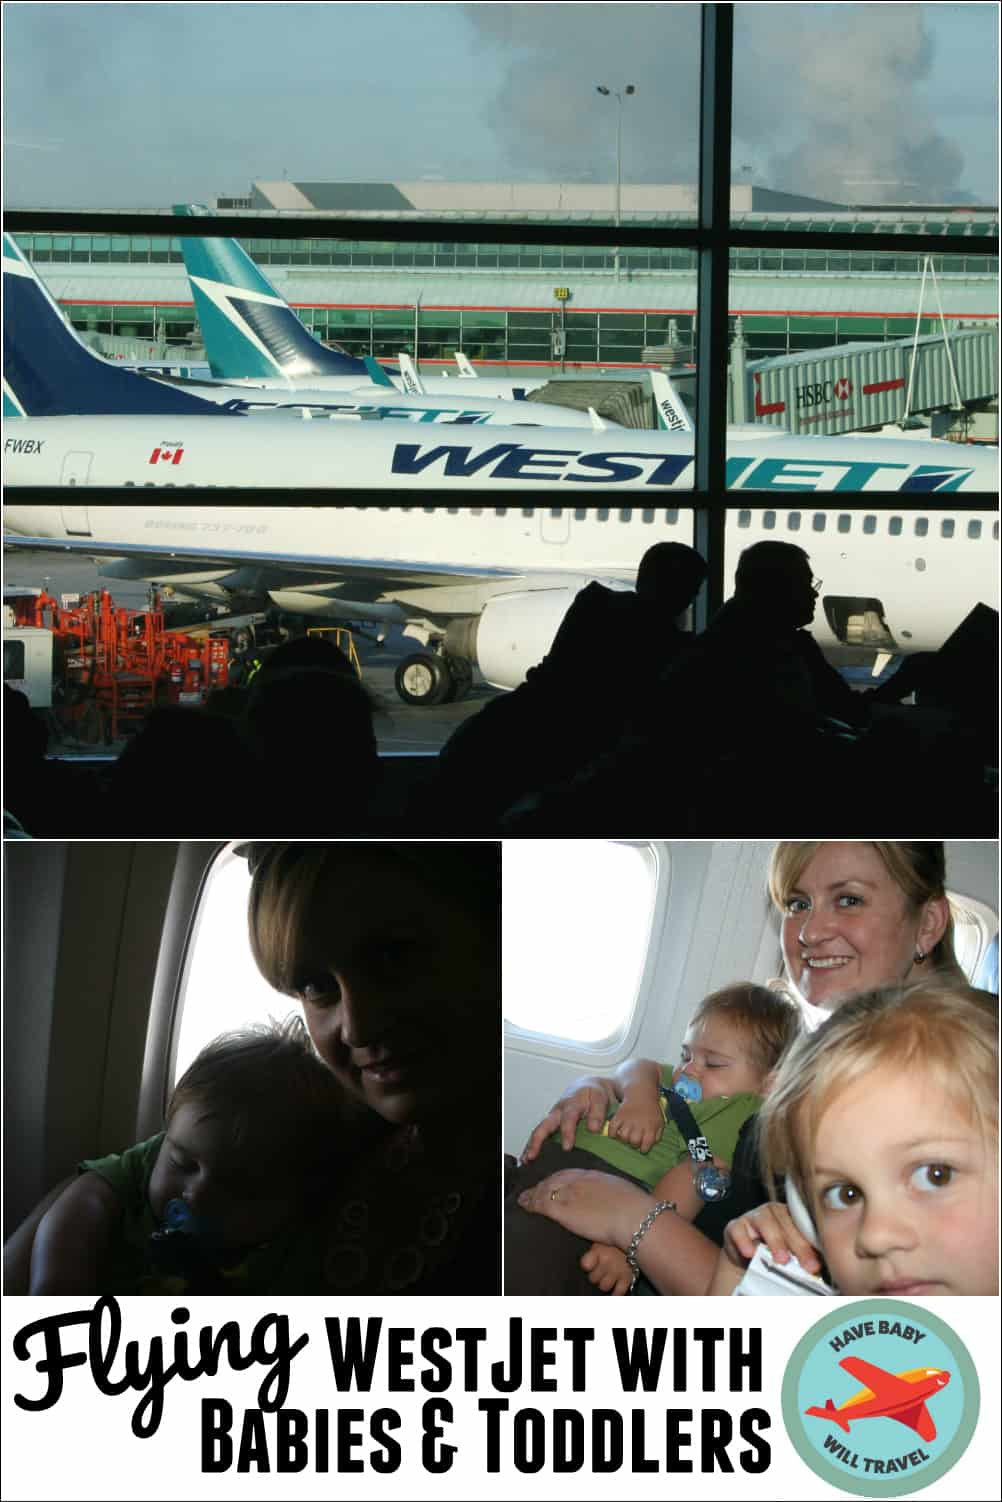 Baby Cot United Airlines Flying Westjet With A Baby Or Toddler Have Baby Will Travel